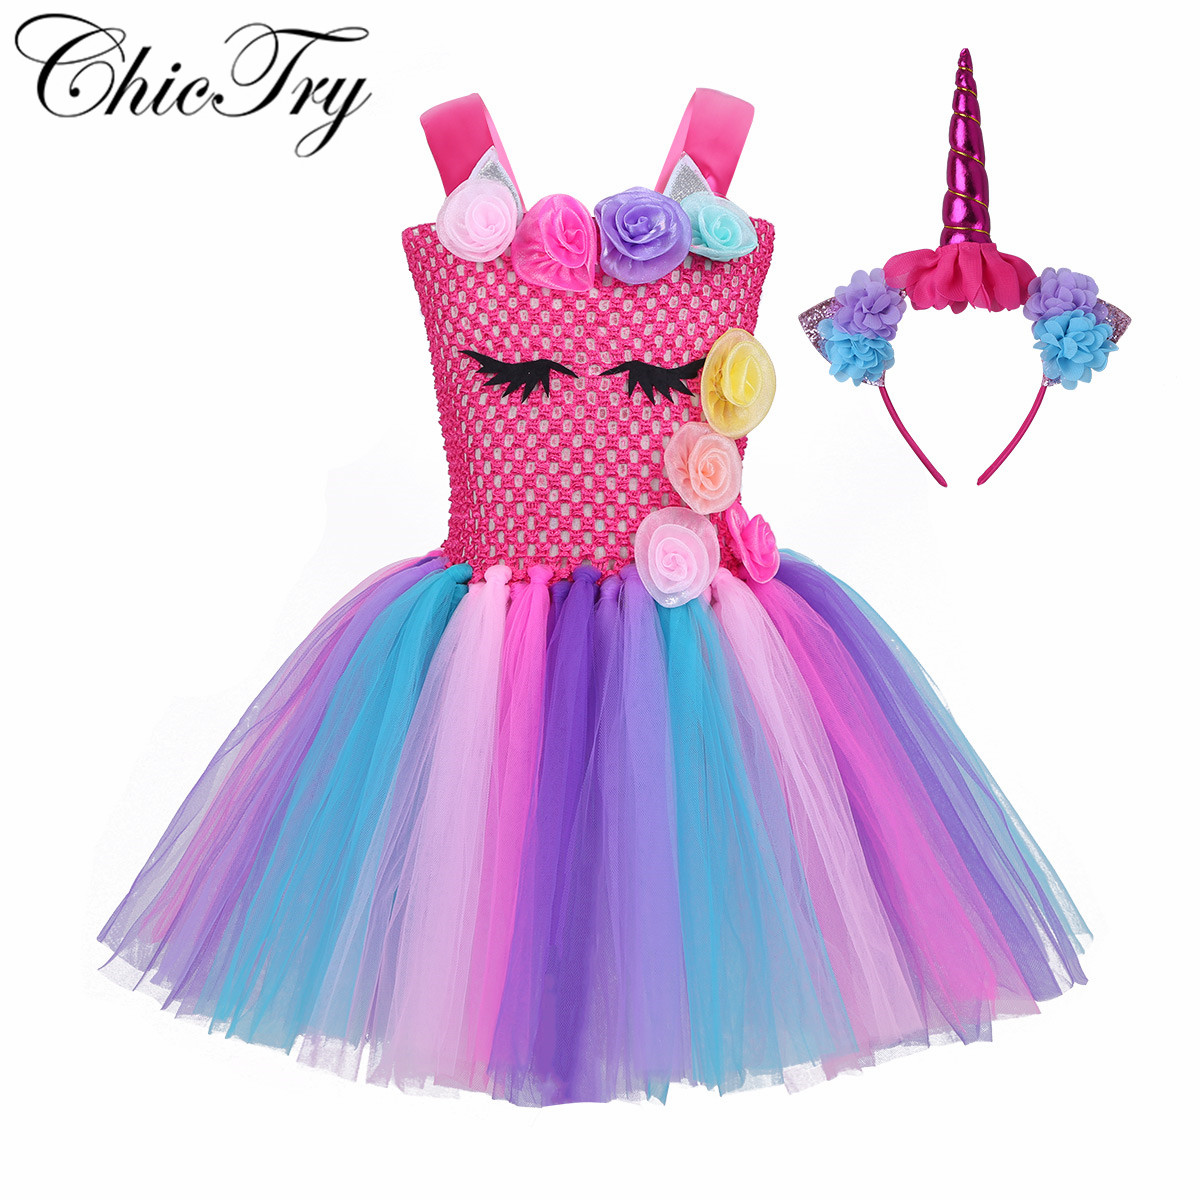 Flower Girls Children Princess Tulle Tutu Dress Princess Mesh Dress for Halloween Cosplay Party Costume Fancy Party Role Play